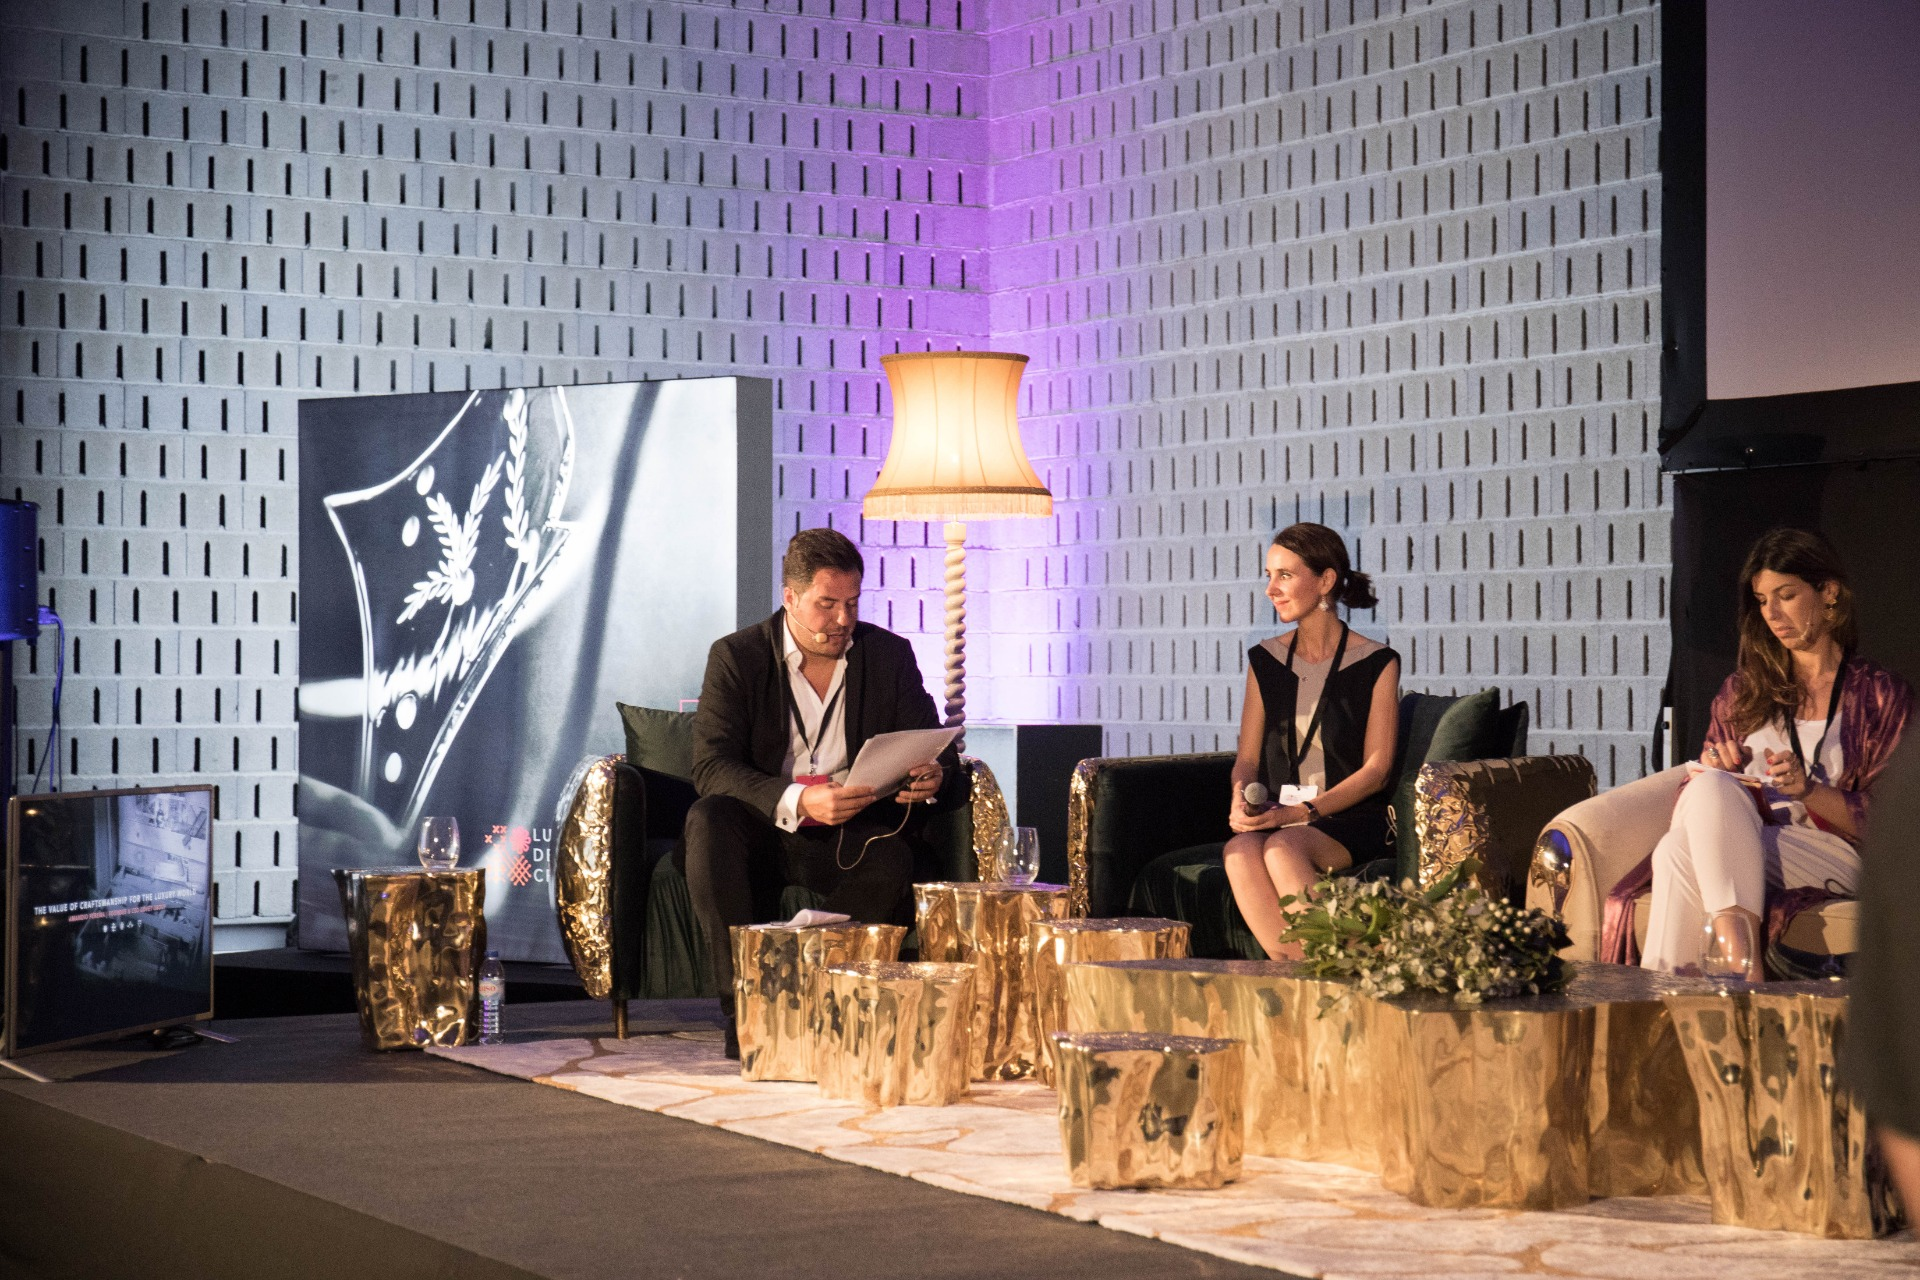 Celebrating Craftsmanship The Luxury Design+Craftsmanship Summit 2019 (4) luxury design Celebrating Craftsmanship: The Luxury Design+Craftsmanship Summit 2019 Celebrating Craftsmanship The Luxury DesignCraftsmanship Summit 2019 4